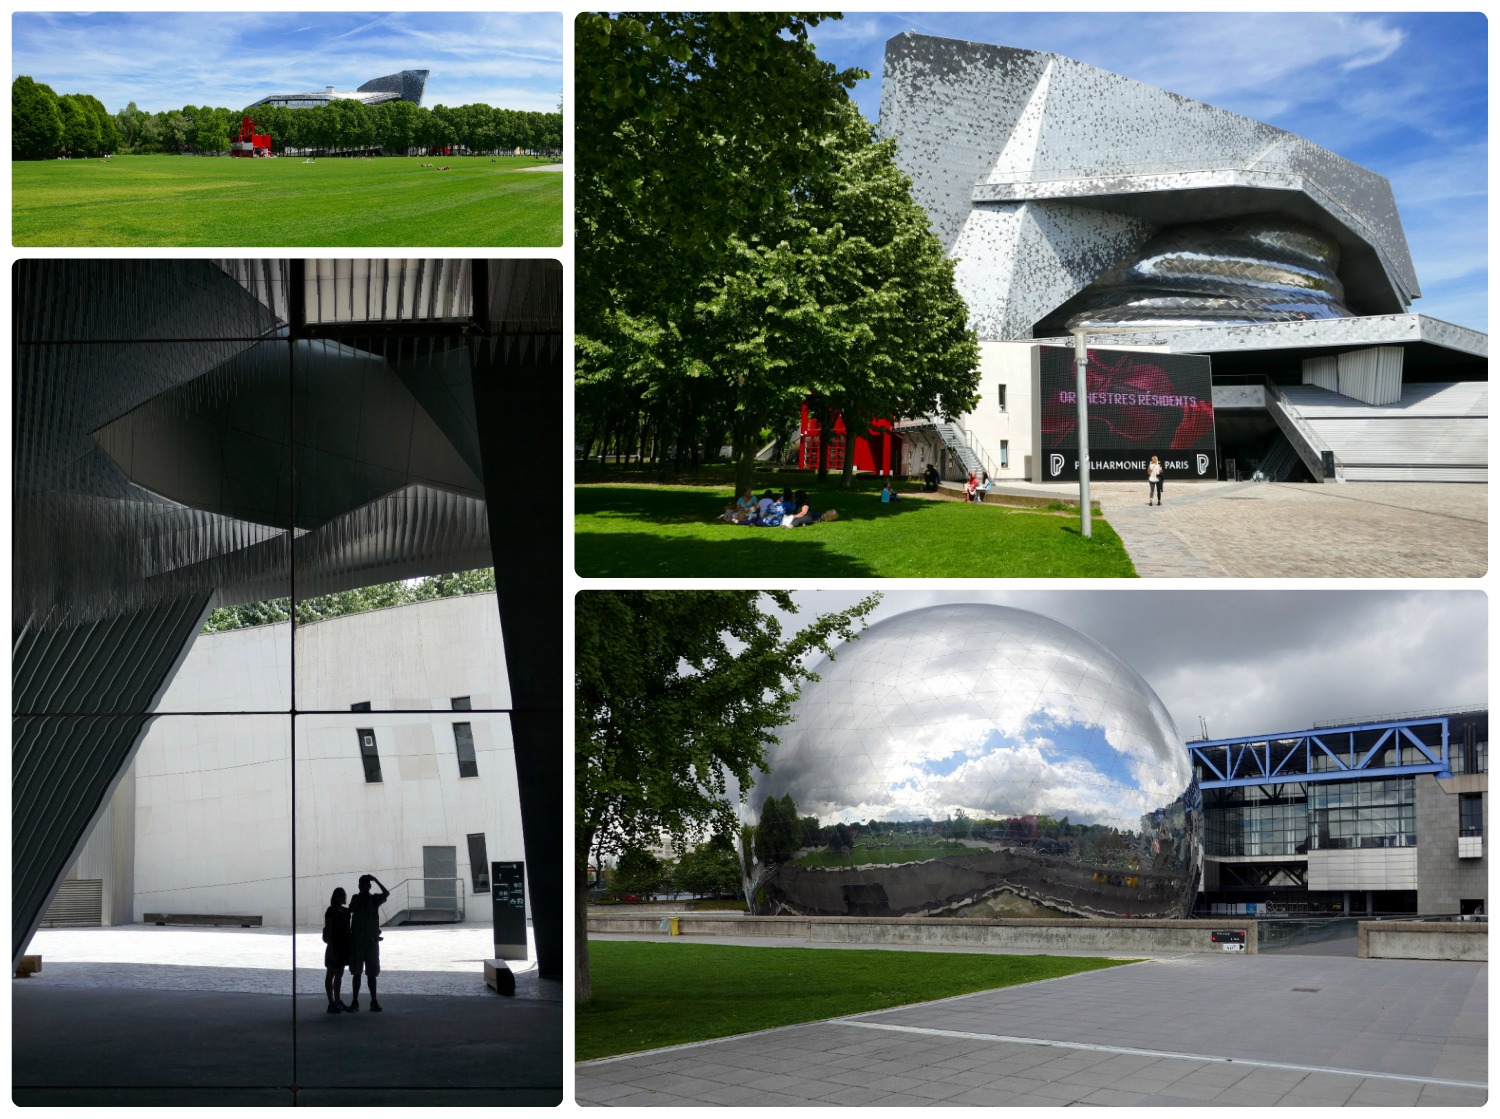 Clockwise (from the top): The large open grass area in the park, the Philharmonie de Paris that's in Parc de la Villette, La Géode - the mirrored sphere in front of the City of Science and Industry, our reflection in Philharmonie de Paris' mirrored exterior.